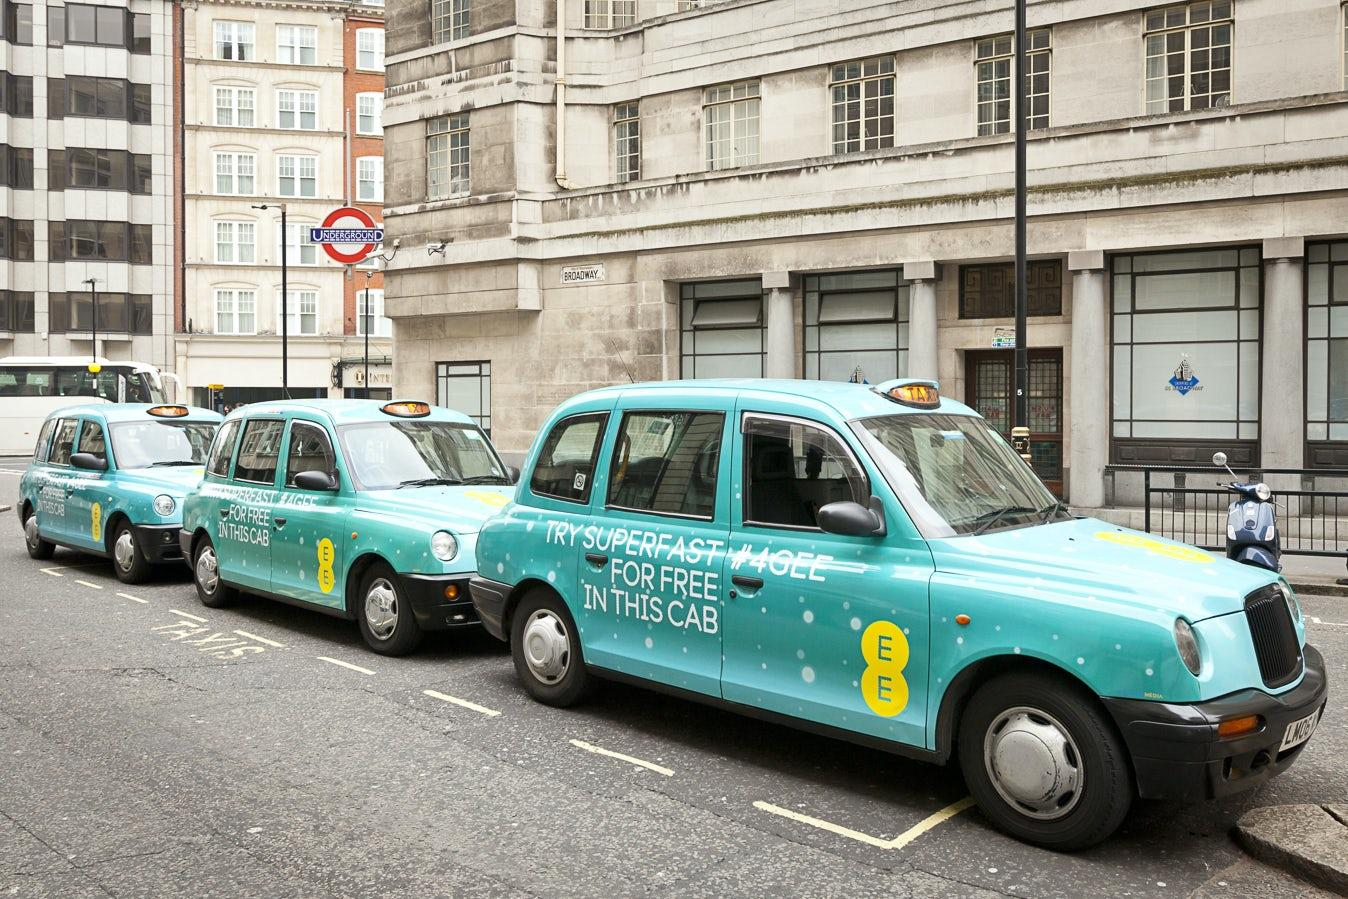 EE hammers home 4G advantage with taxi fleet – Marketing Week